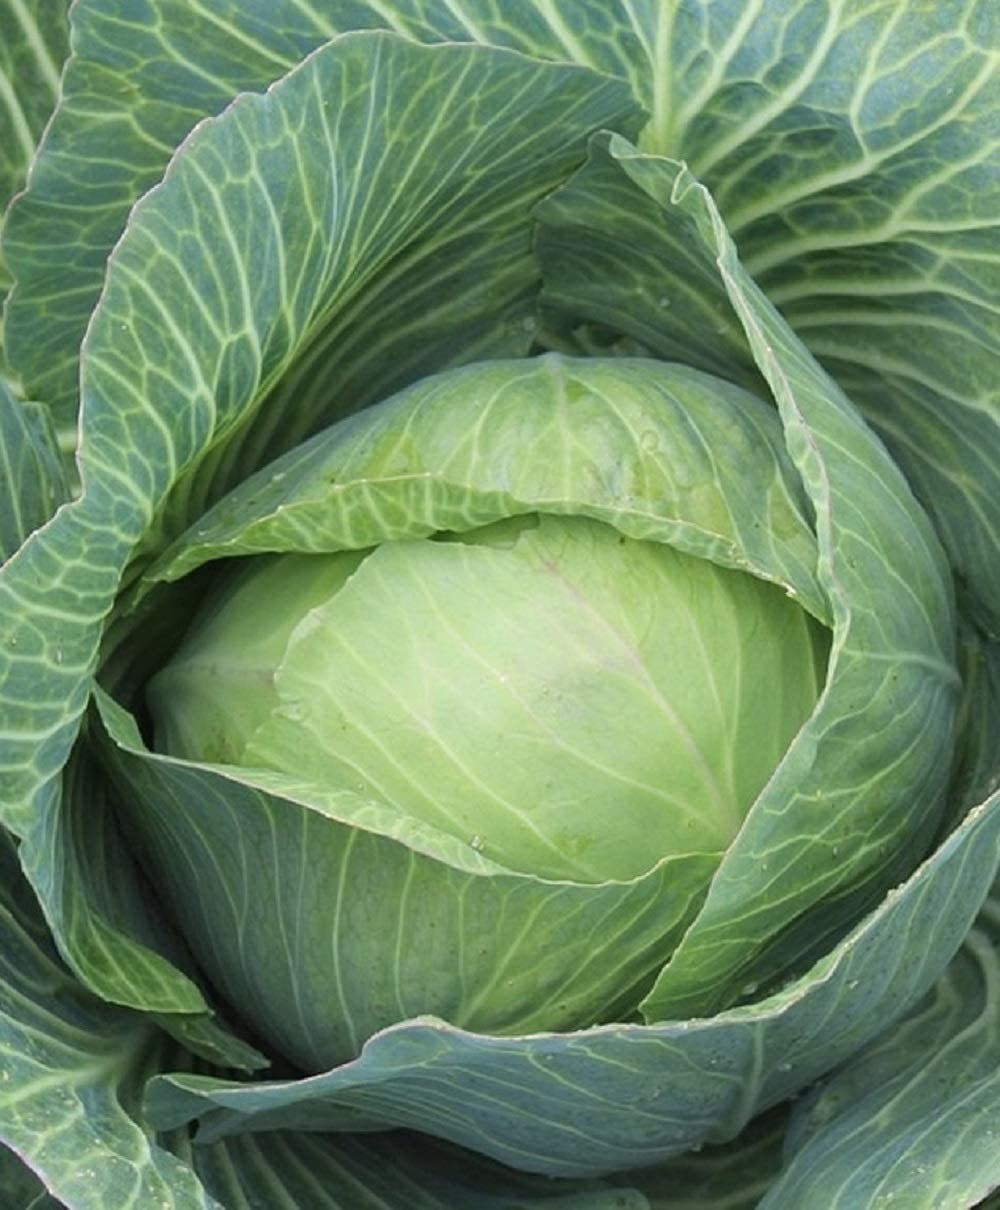 50+ Count Late Flat Dutch Cabbage Seed, Heirloom, Non GMO Seed Tasty Healthy Veggie